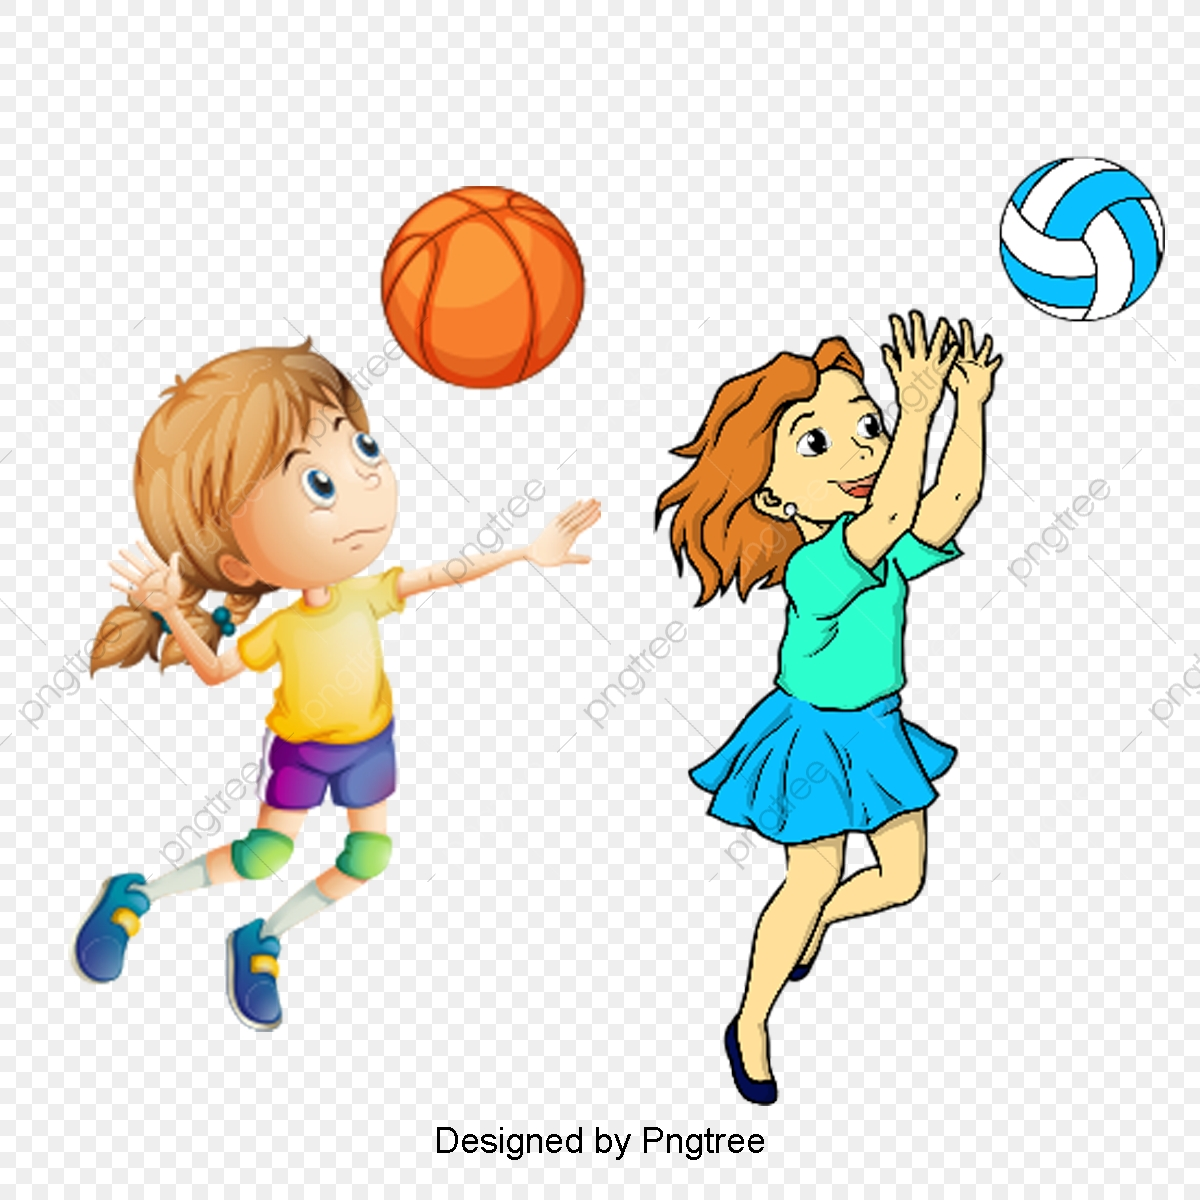 cartoon play activities sports characters playing cool clipart ball throwing psd upgrade file